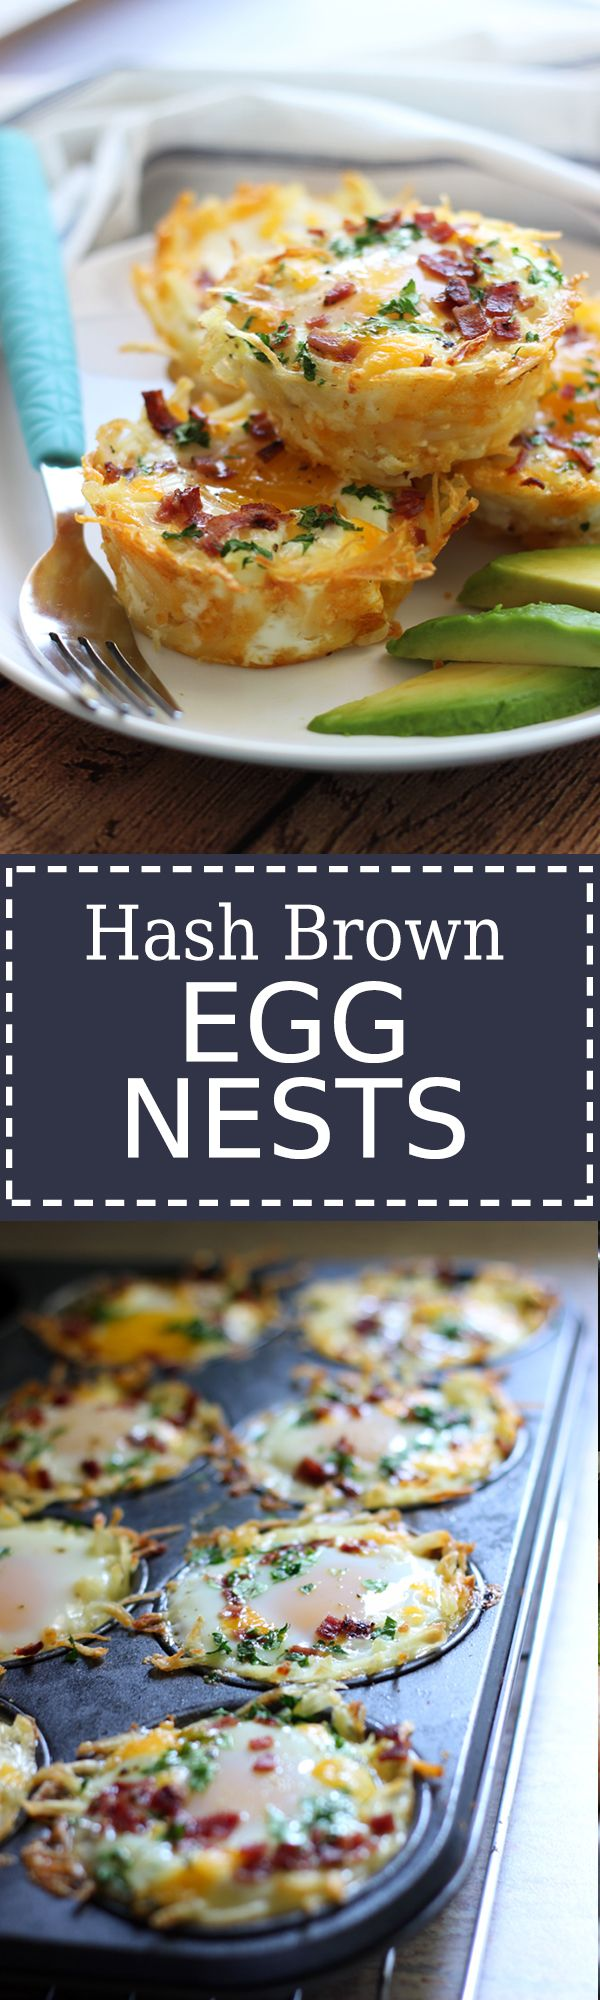 Shredded hash browns and cheese nests baked until crispy topped with a baked eggs, crumbled bacon and more cheese. Served with chilled avocado slices.